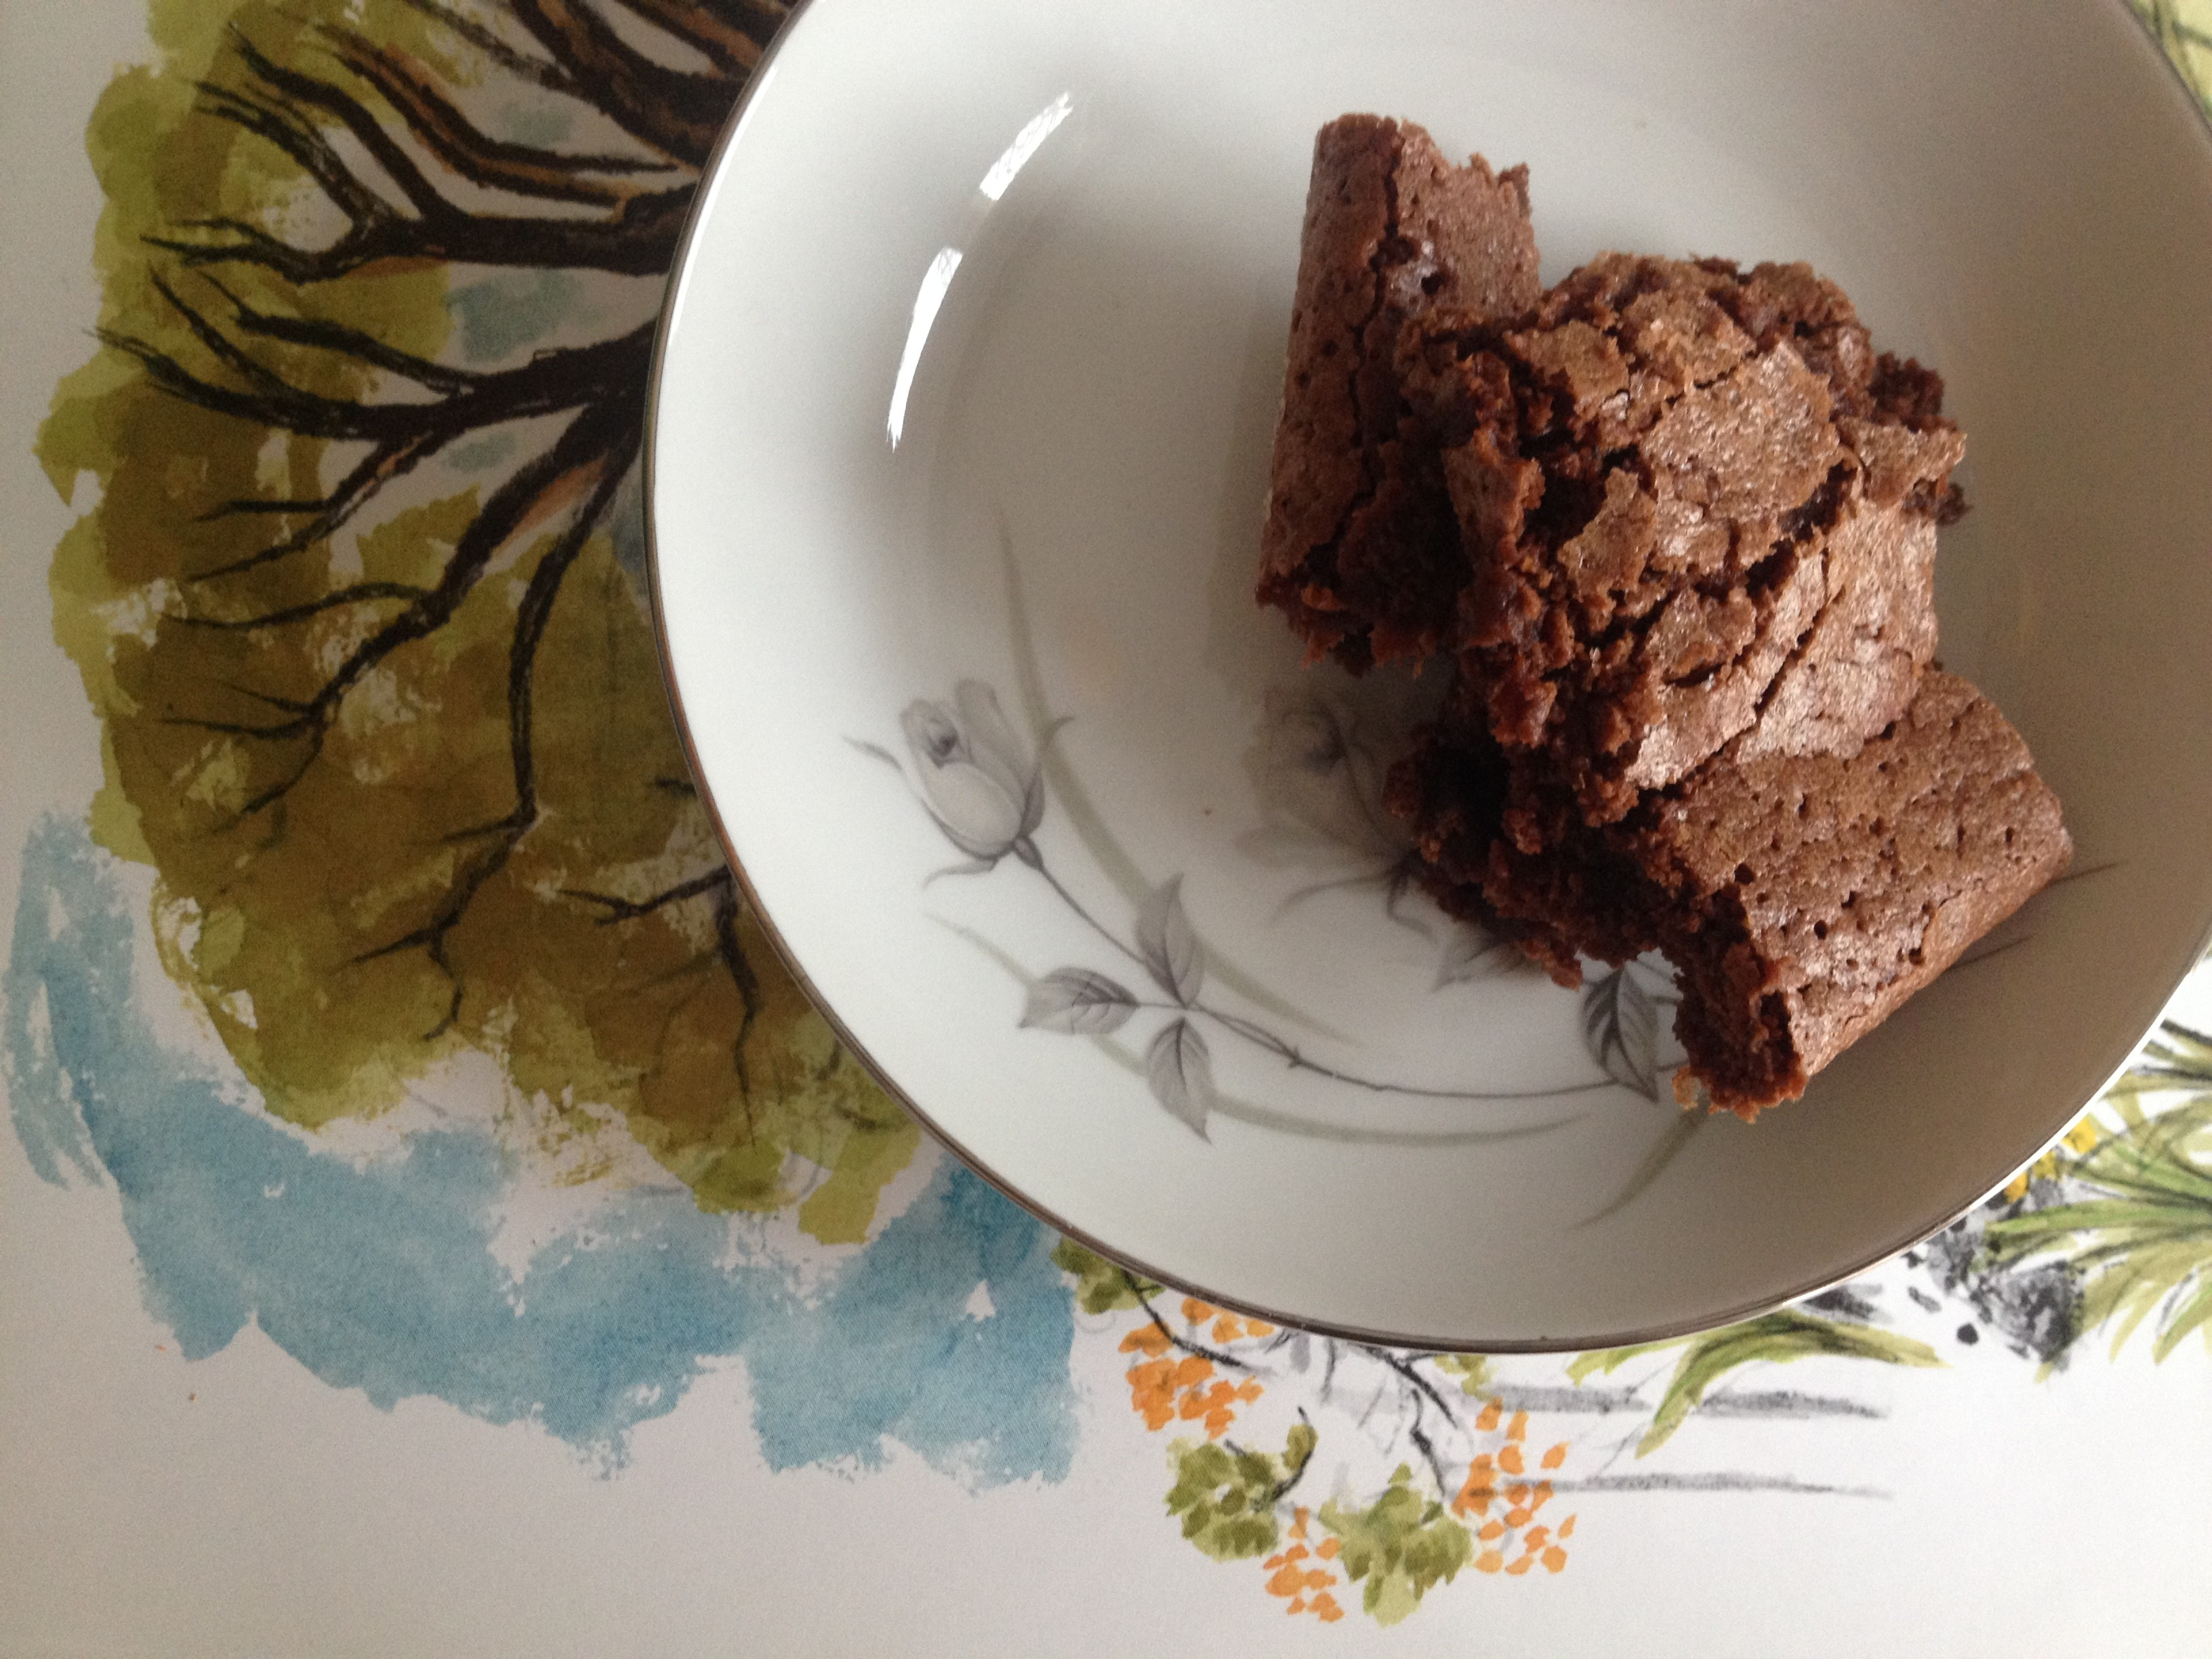 Blue apron brownies - To Celebrate My Birthday I Tried A New Recipe For Brownies Katharine Hepburn S Brownies I Followed The Recipe Straight From The Gourmet Cookbook